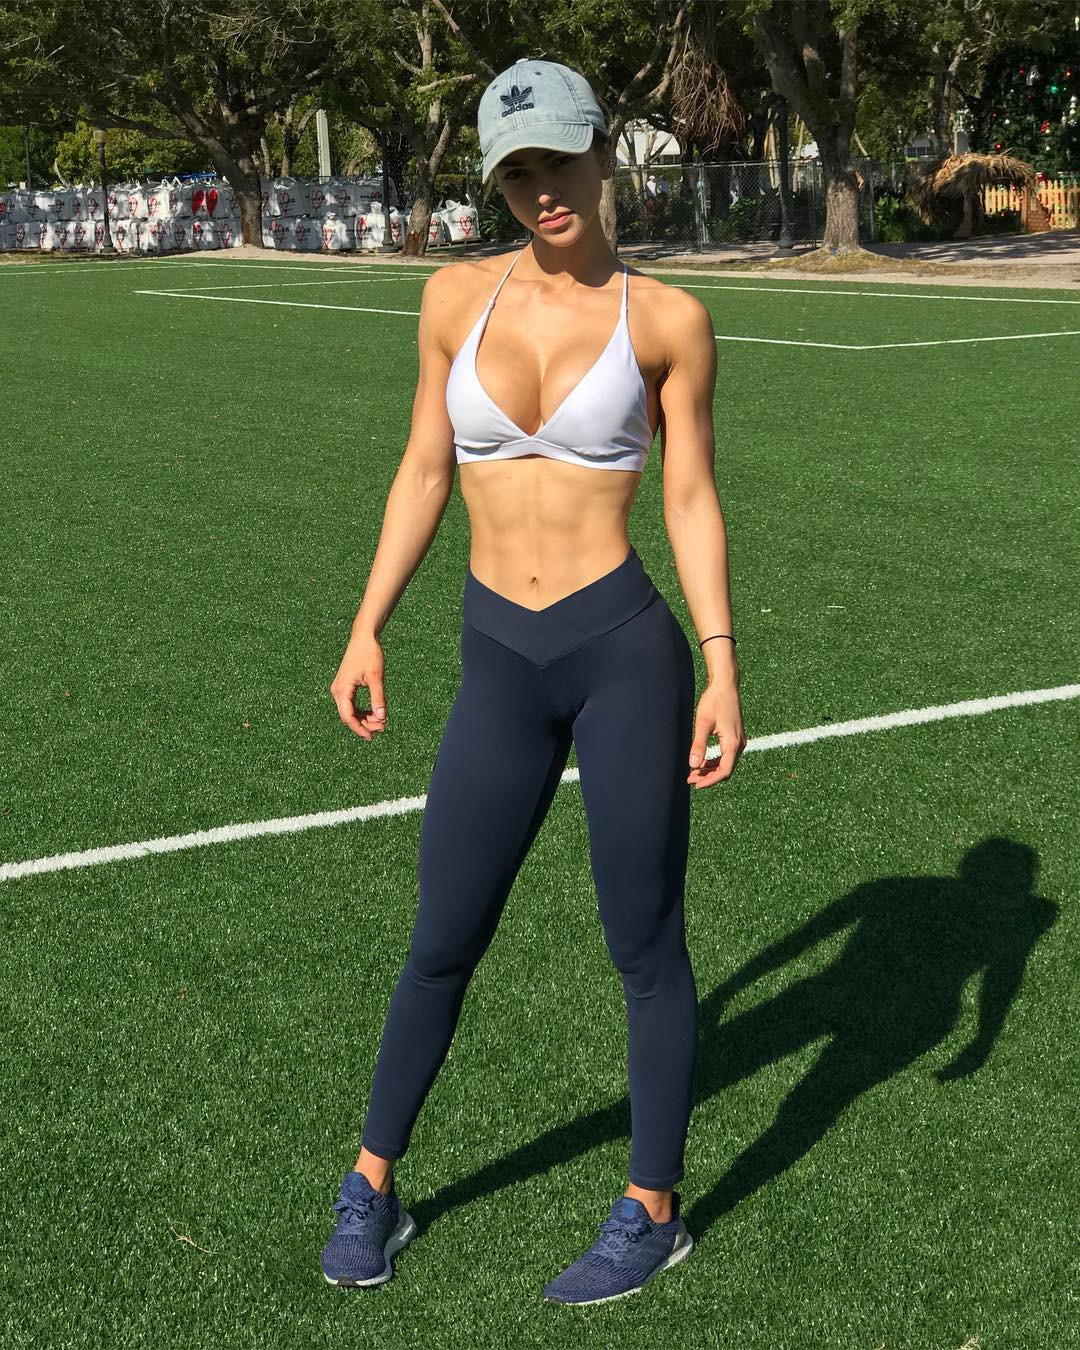 Cuerpos de mujeres fitness, Physical fitness